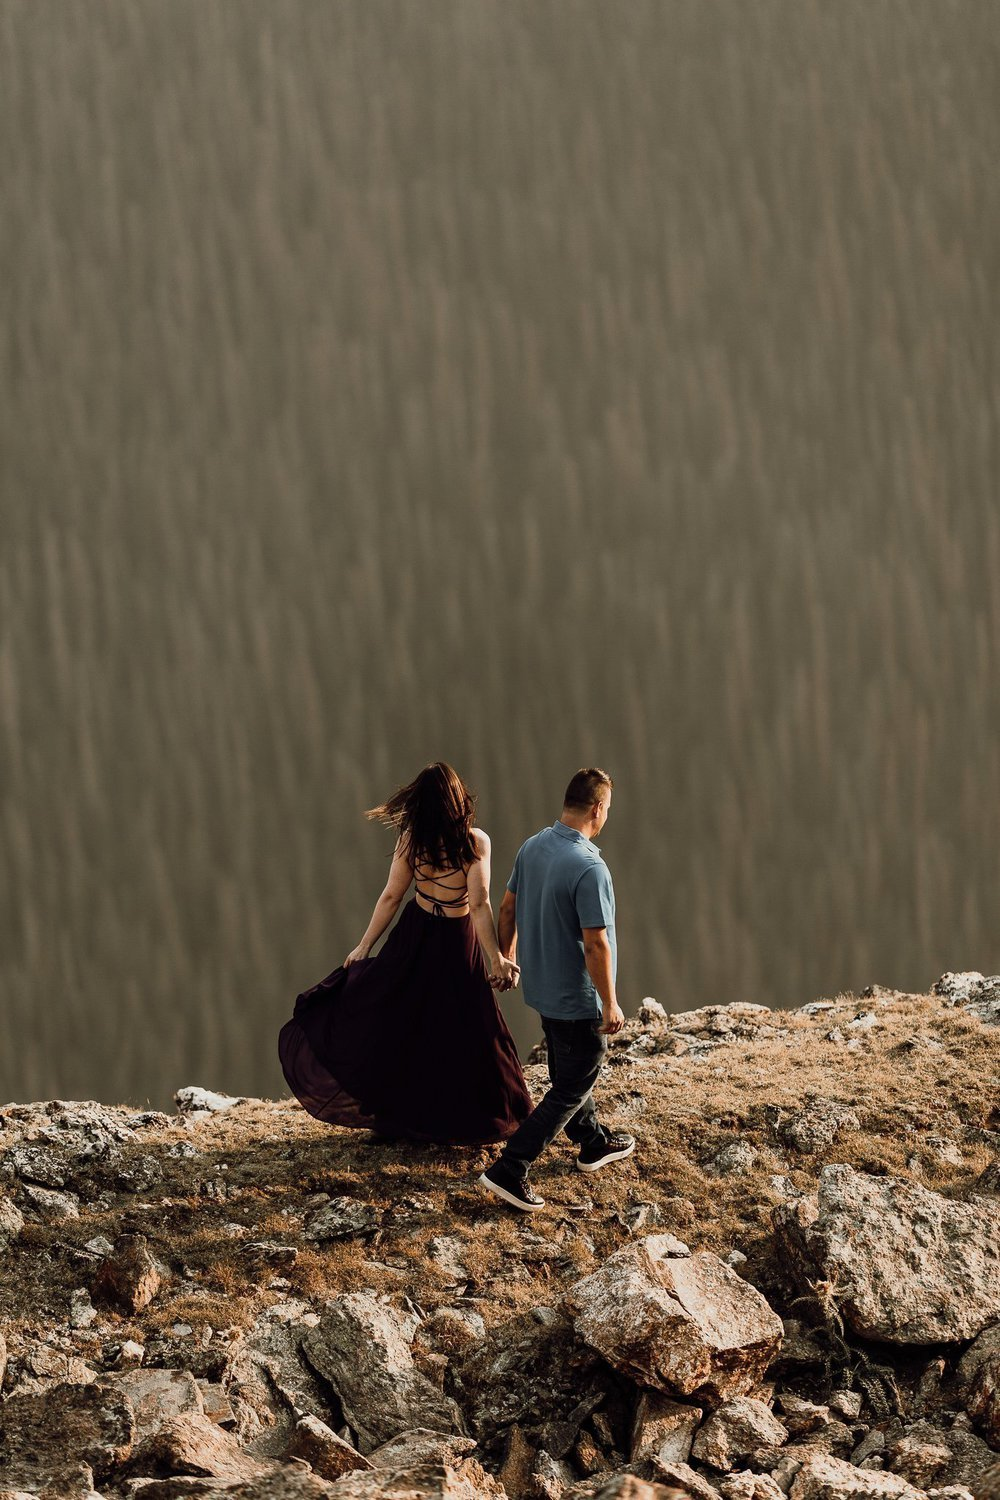 ROCKY MOUNTAIN ENGAGEMENT PHOTOGRAPHY|TRAIL RIDGE ROAD ENGAGEMENT I SELMA + ADO| JUSTYNA E BUTLER PHOTOGRAPHY | ROCKY MOUNTAIN NATIONAL PARK ENGAGEMENT |COLORADO MOUNTAIN ENGAGEMENT PHOTOGRAPHER